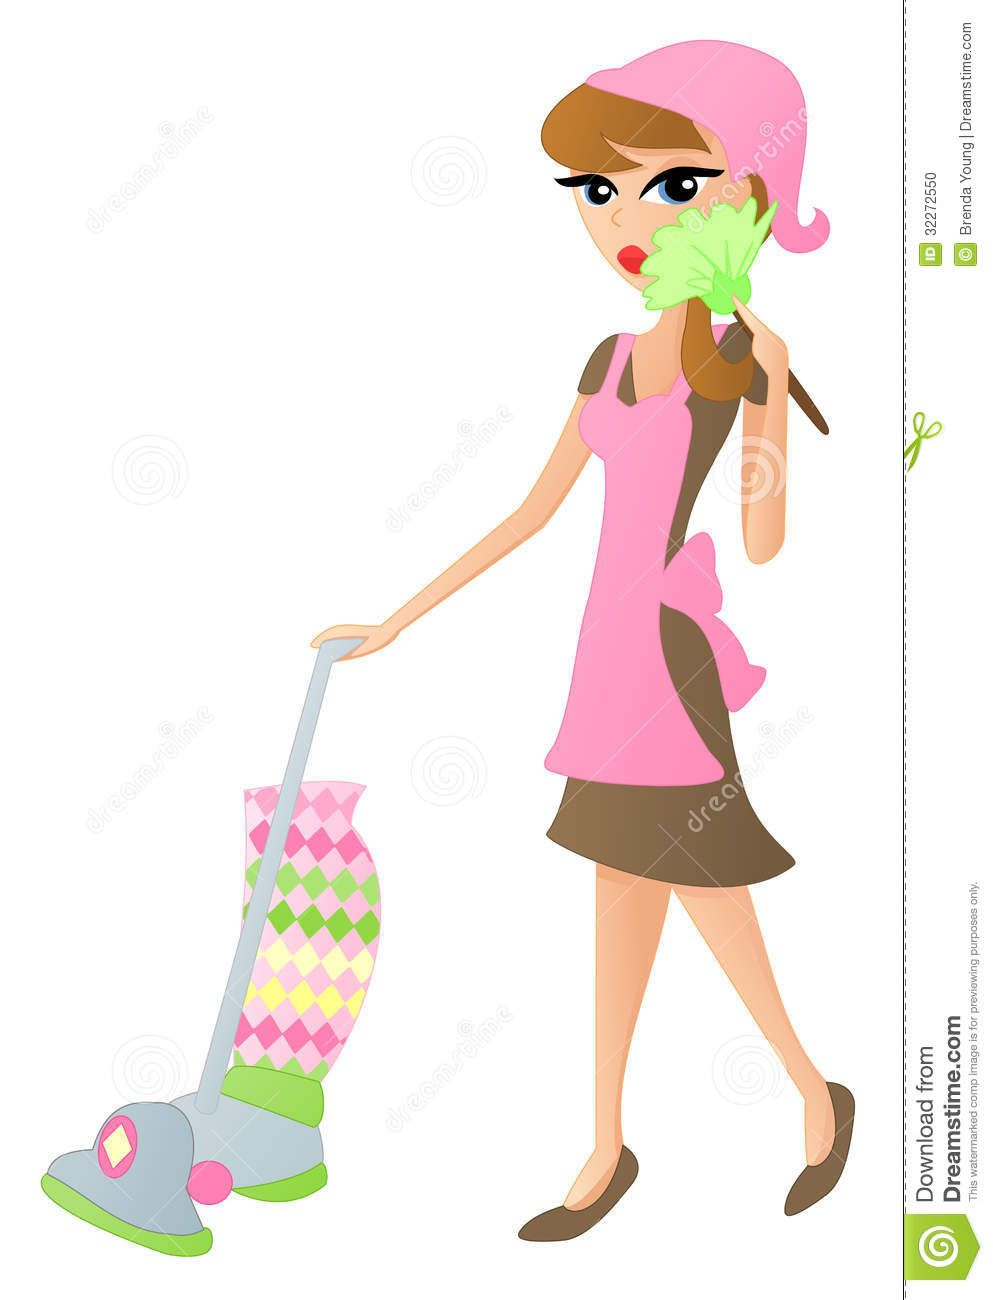 Free download Cartoon Cleaning Lady Clipart for your.